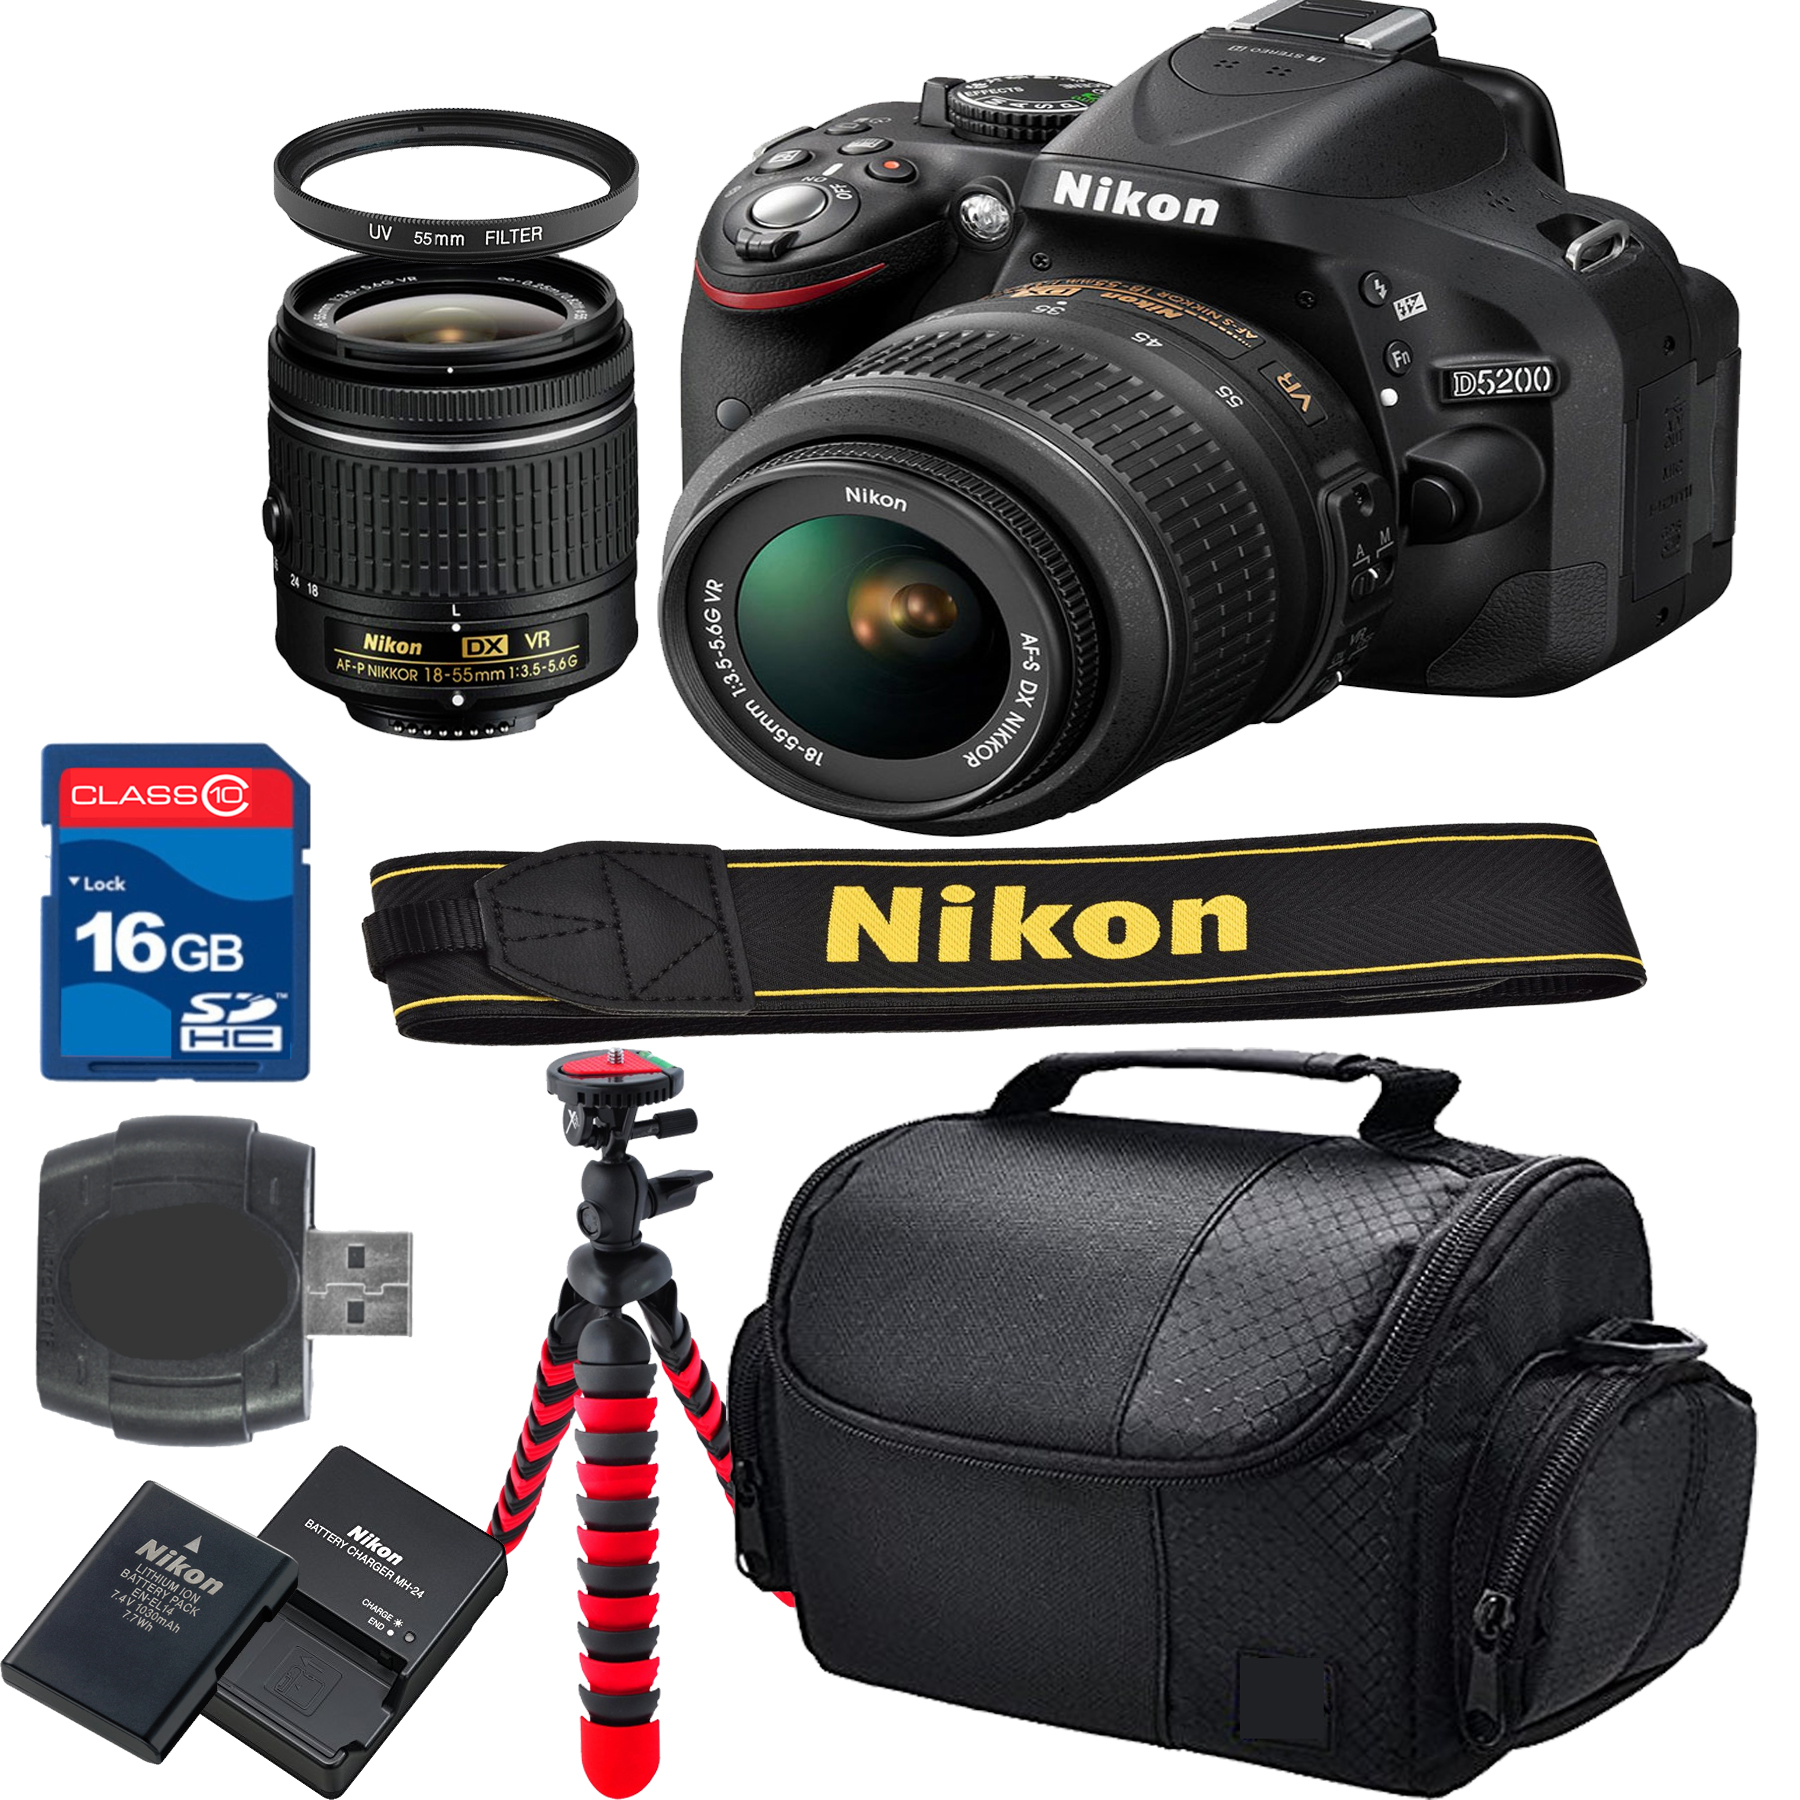 Nikon D5200 Bundle + 18-55mm VR Lens + 16gb High Speed Me...